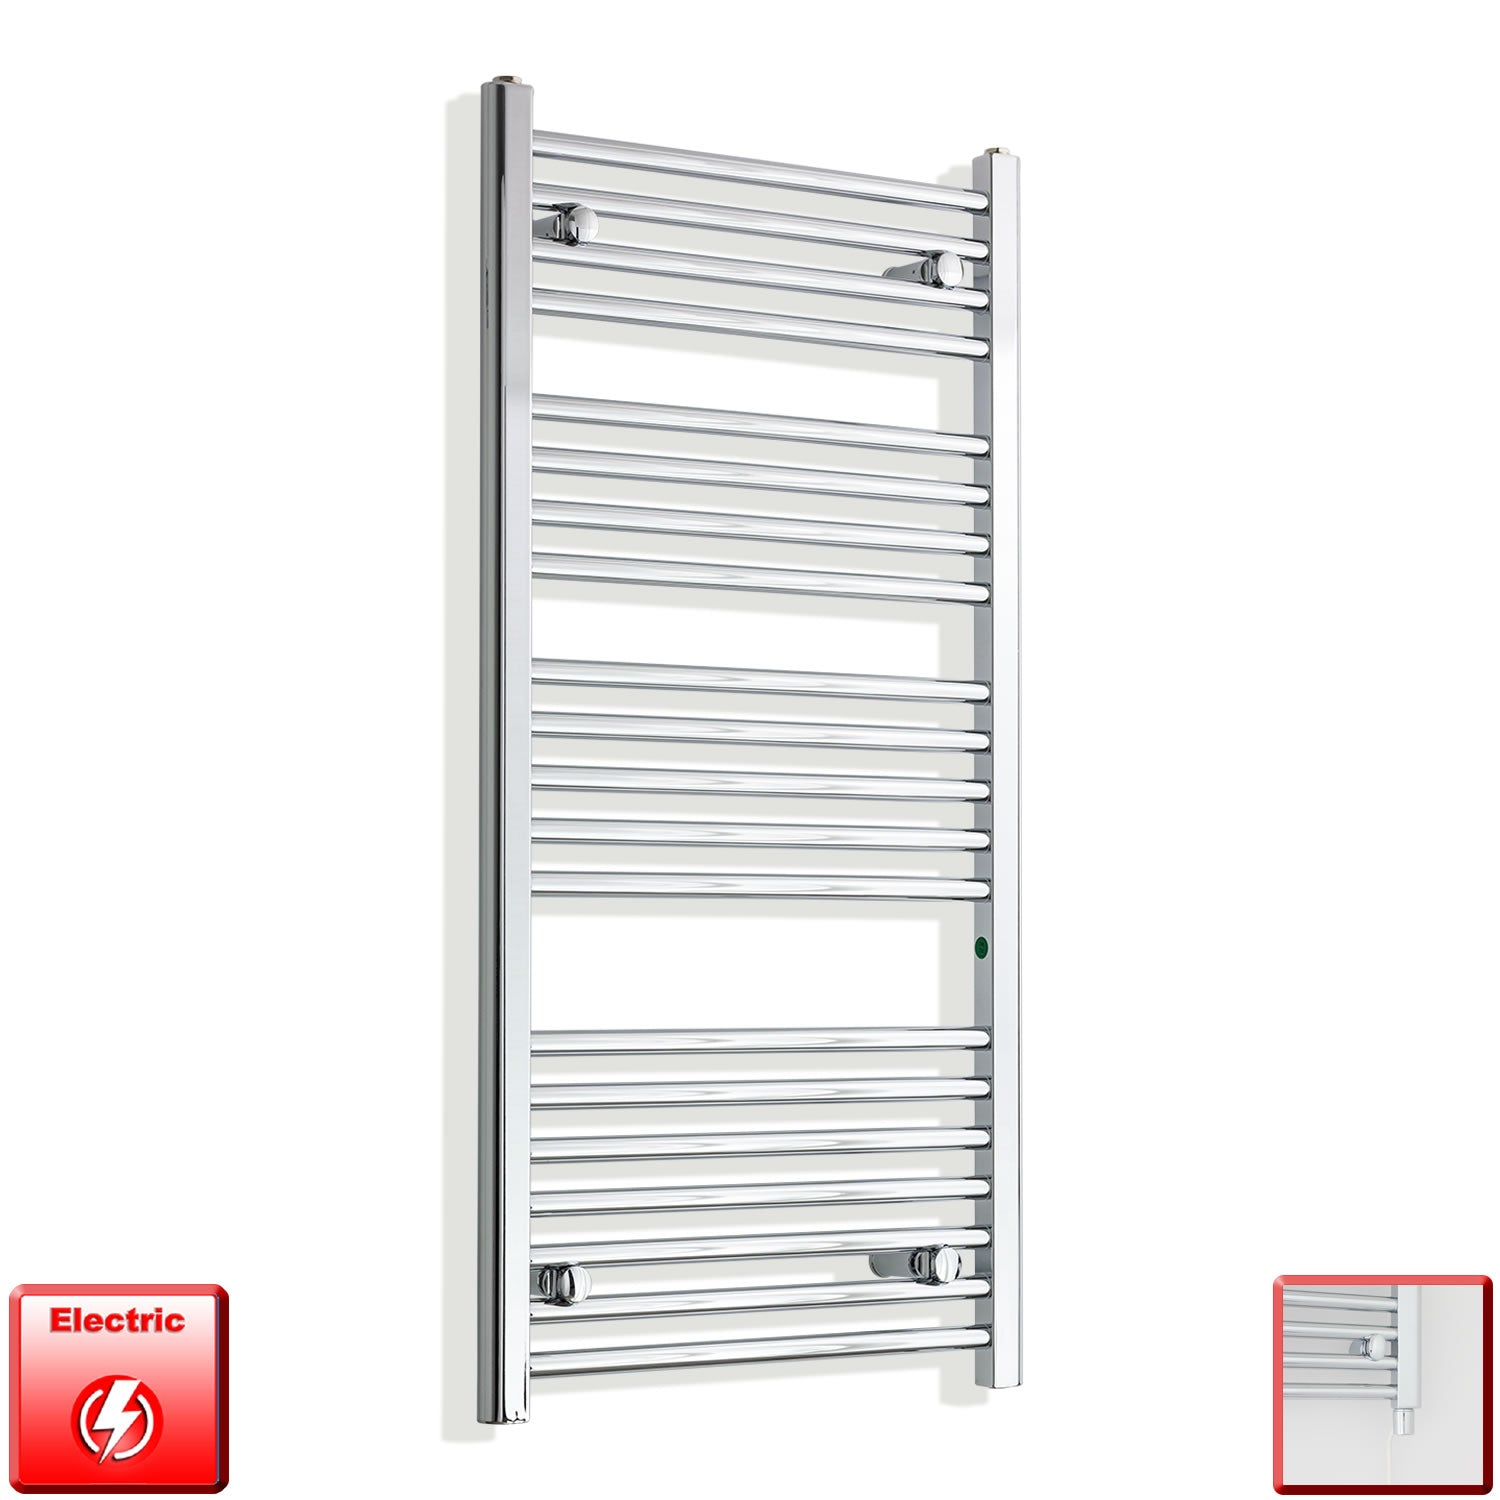 550mm Wide 1100mm High Pre-Filled Chrome Electric Towel Rail Radiator With Single Heat Element